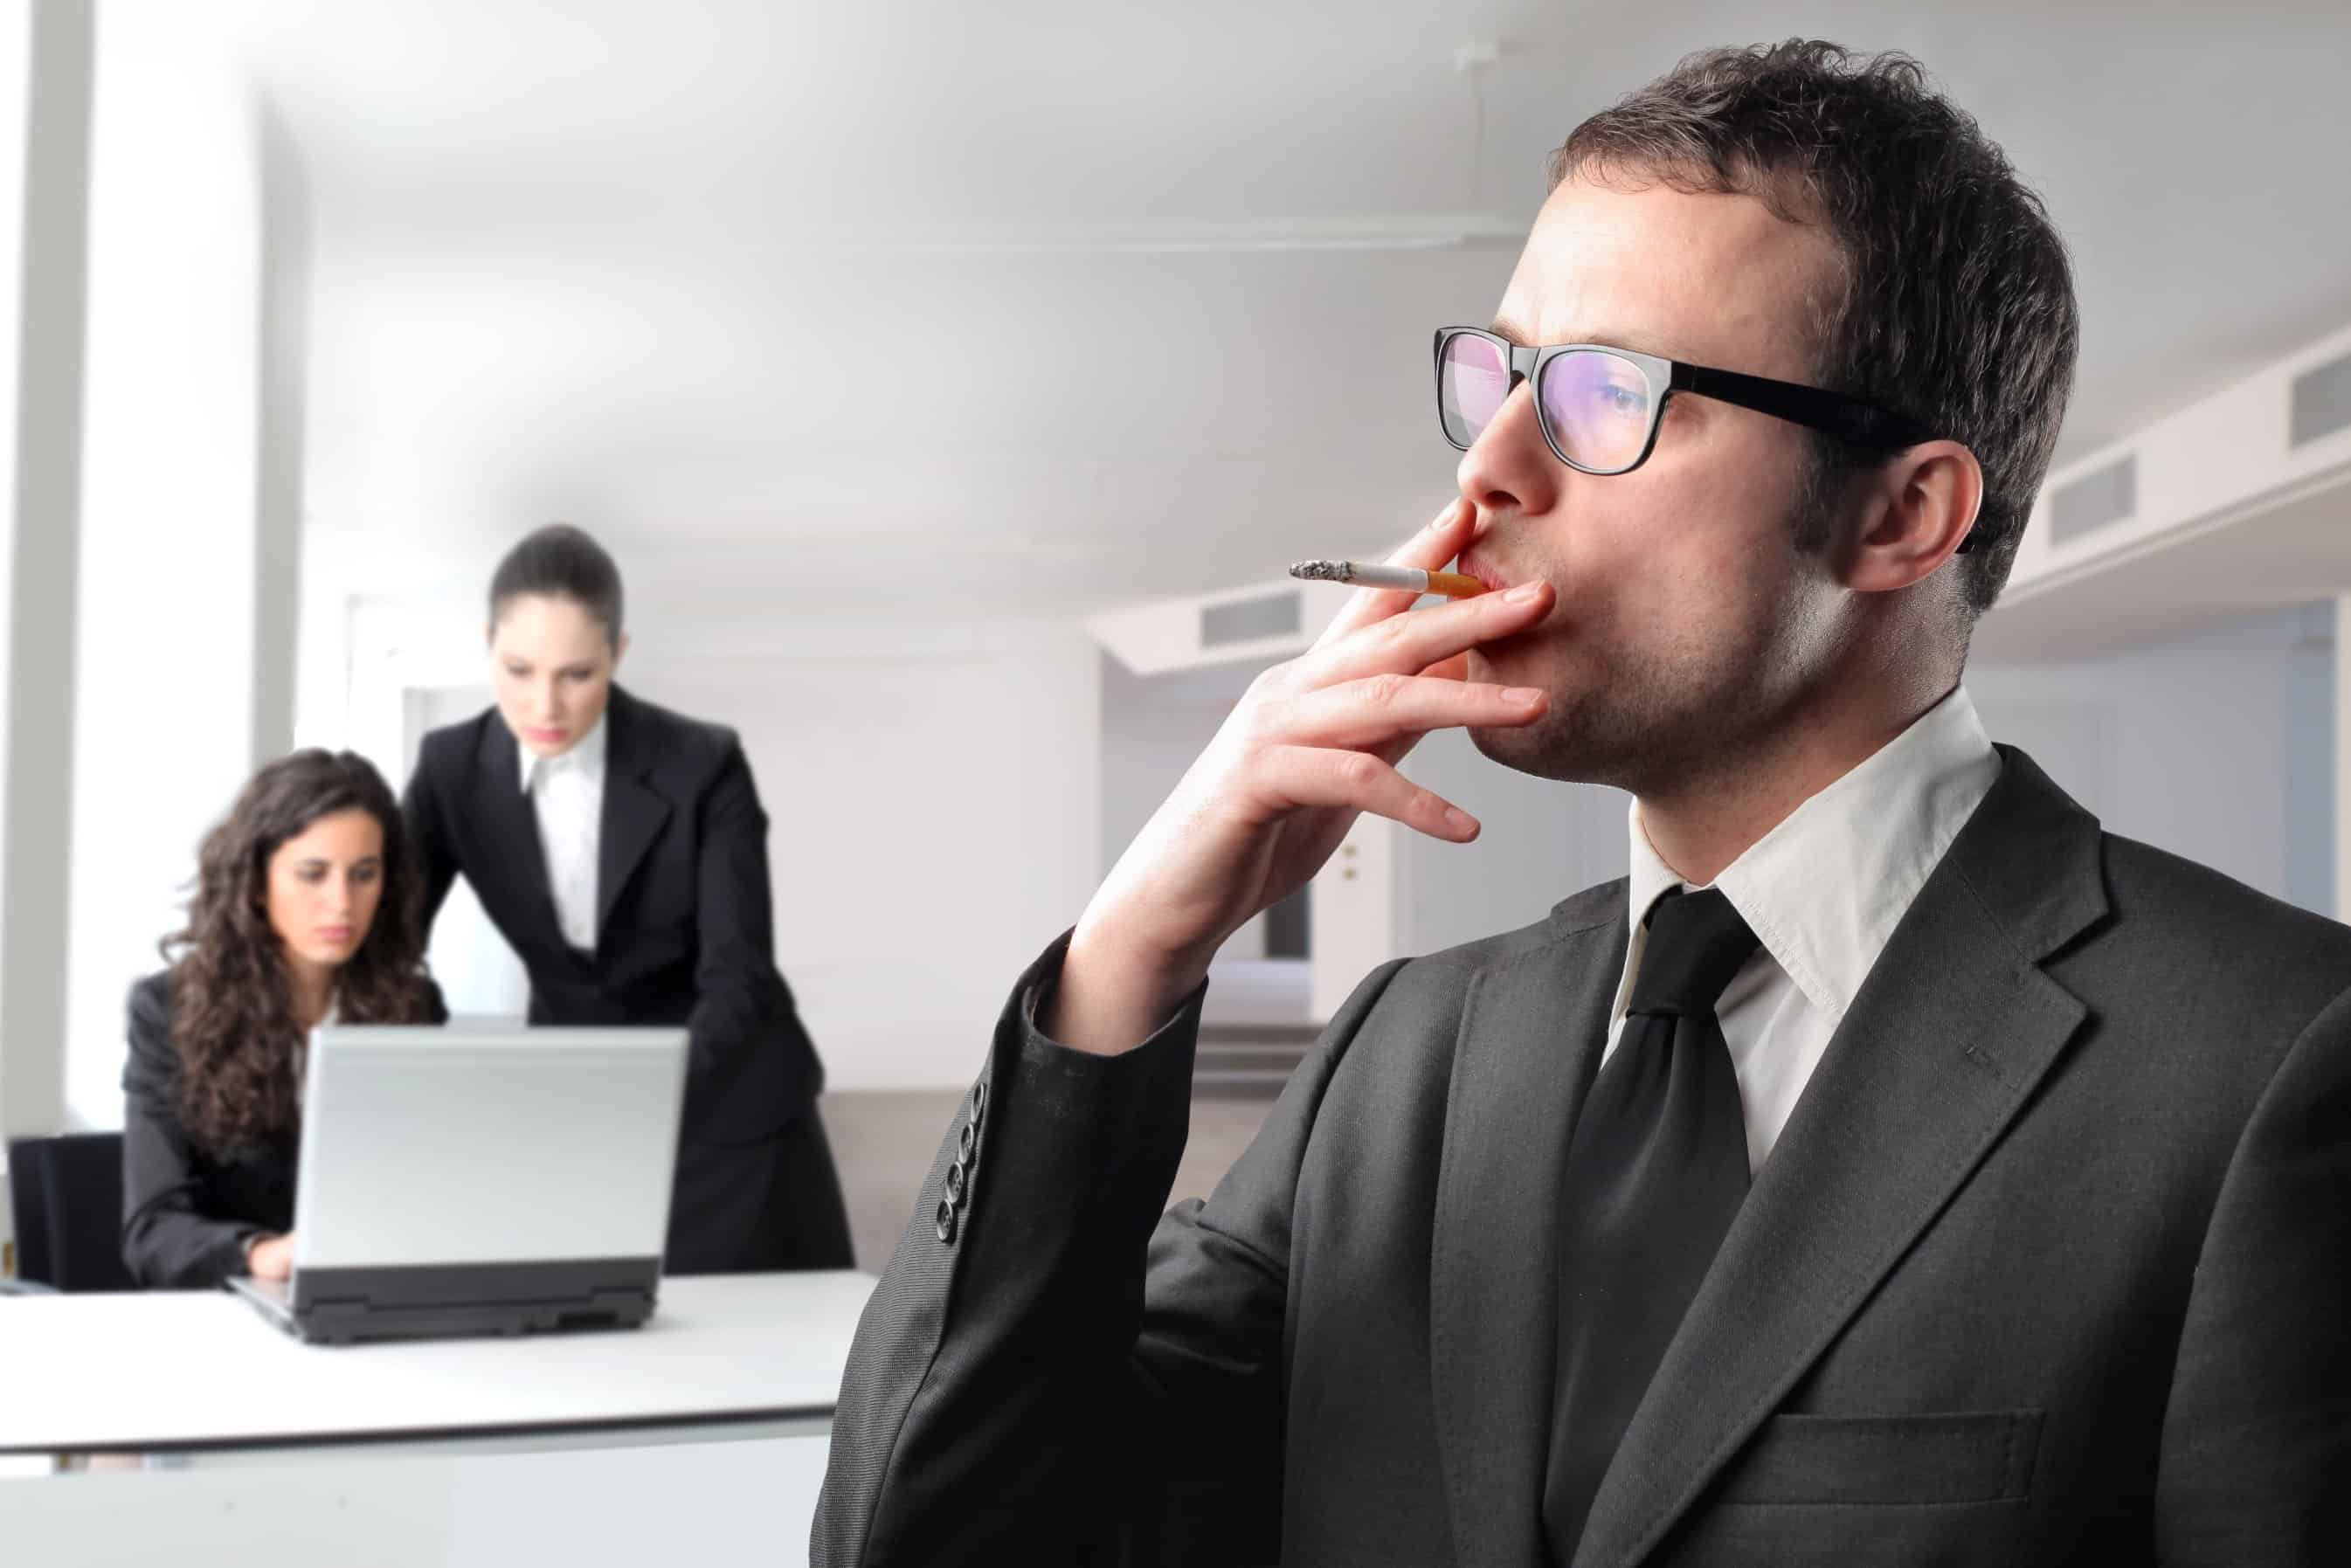 Are stressful workplaces the new smoking?